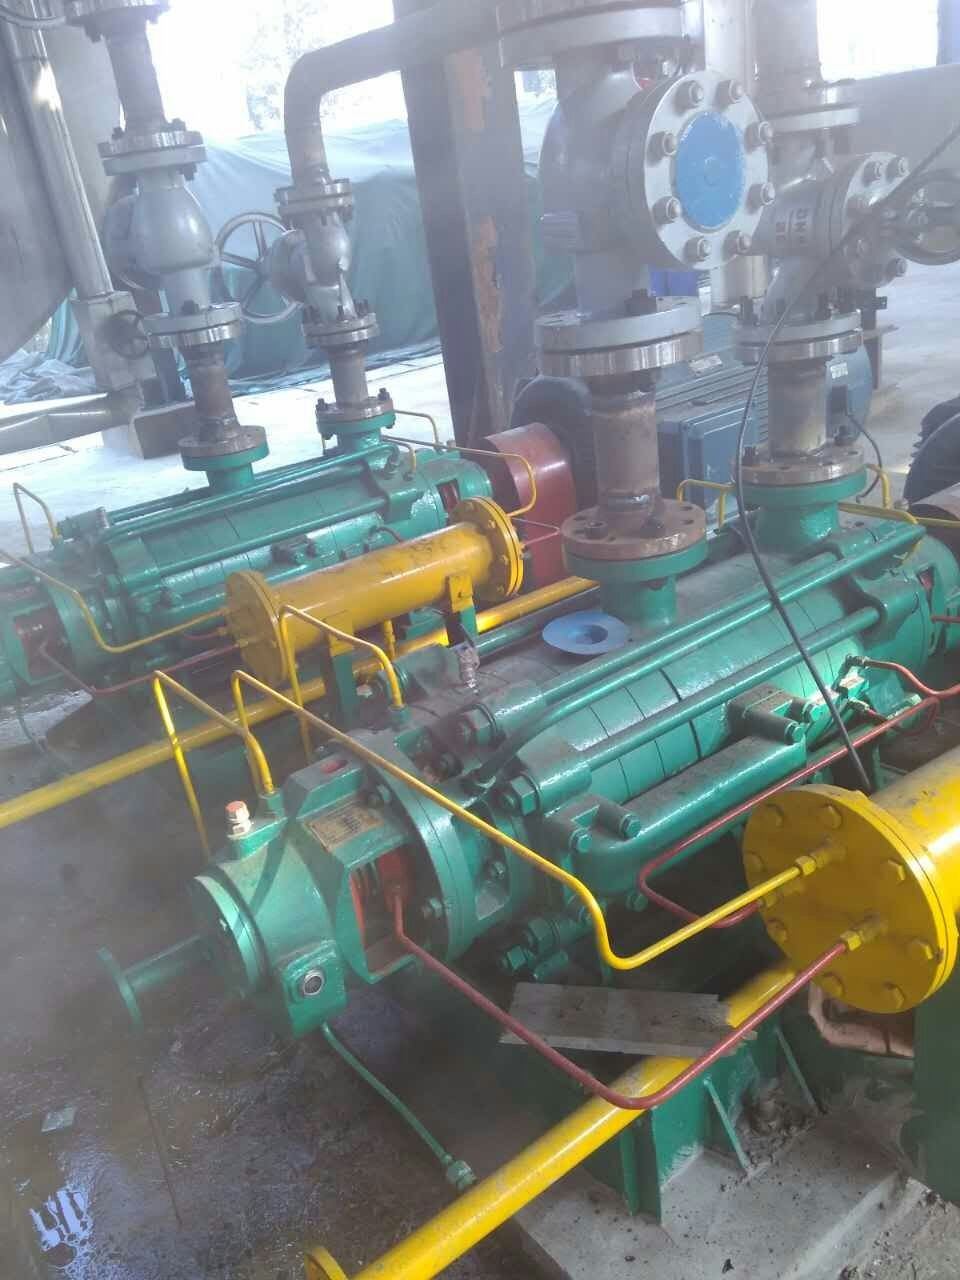 �yf�yil�..���zd����y�'�)�h�y�(�-c_zd gold mining pumps,horizontal multistage centrifugal water